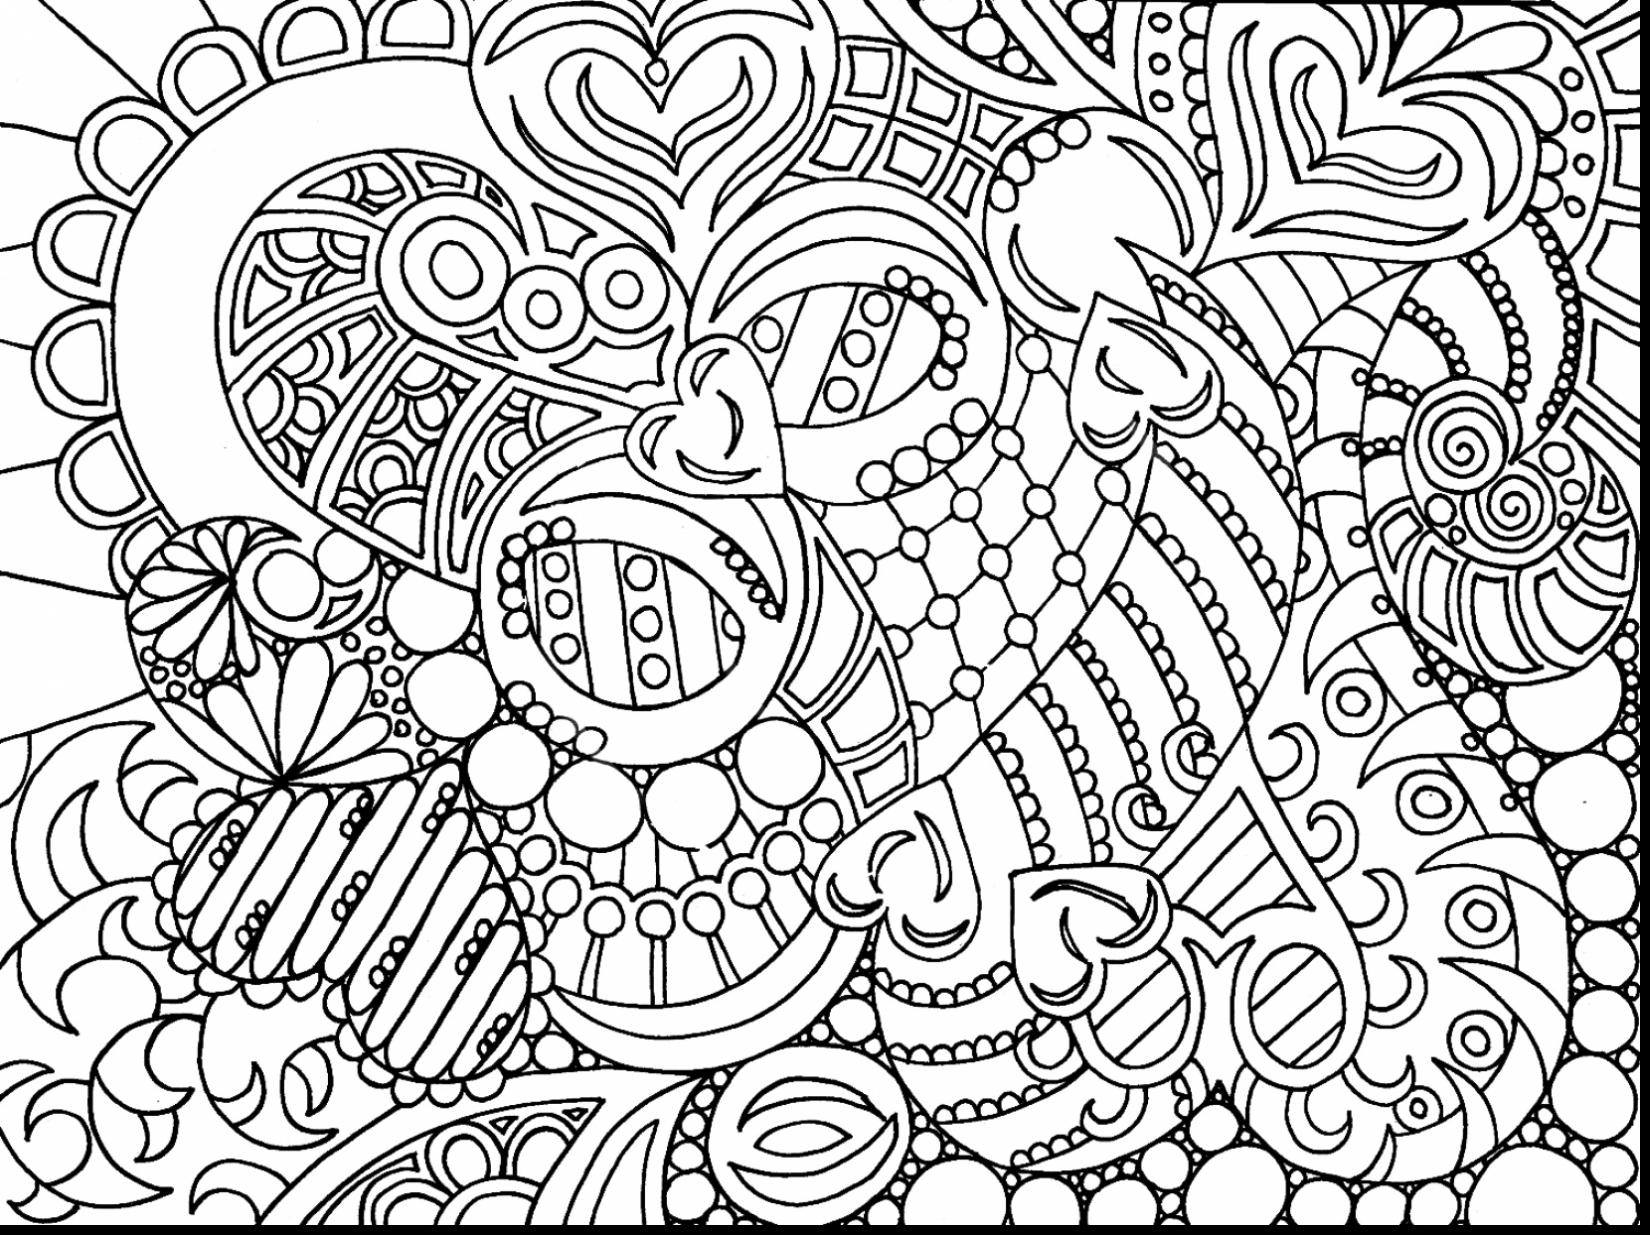 Tumblr Coloring Pages for Teenagers Printable Coloring Pages the to ...